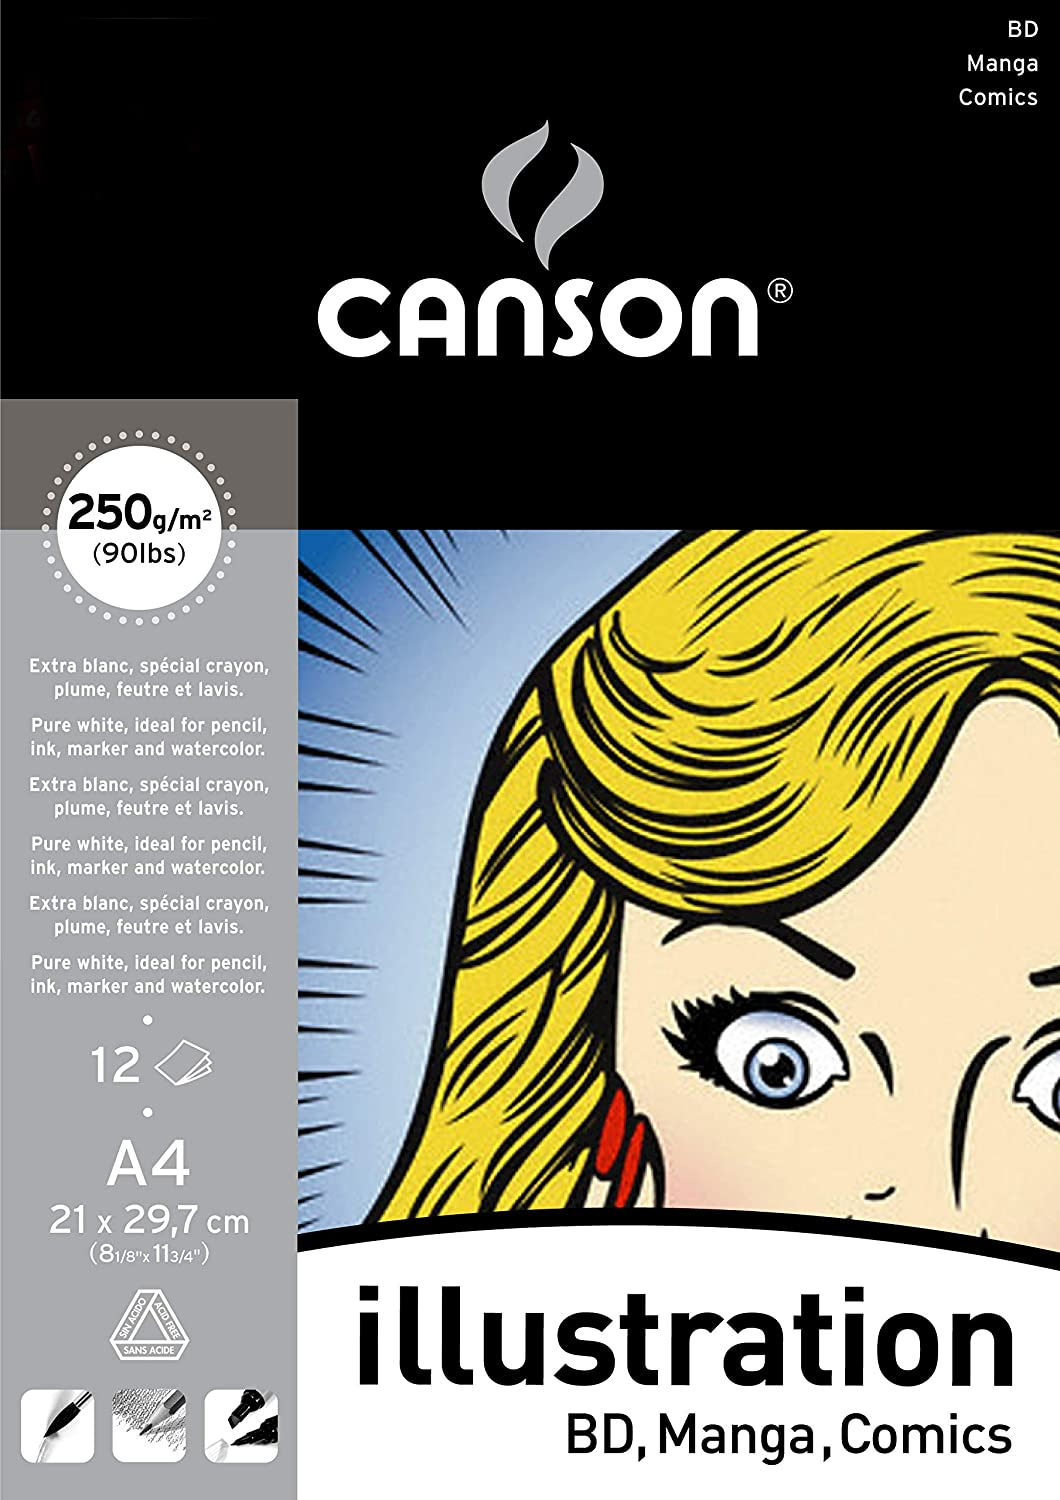 Bloc Encolado, A4, 12 Hojas, Canson Illustration Liso 250g